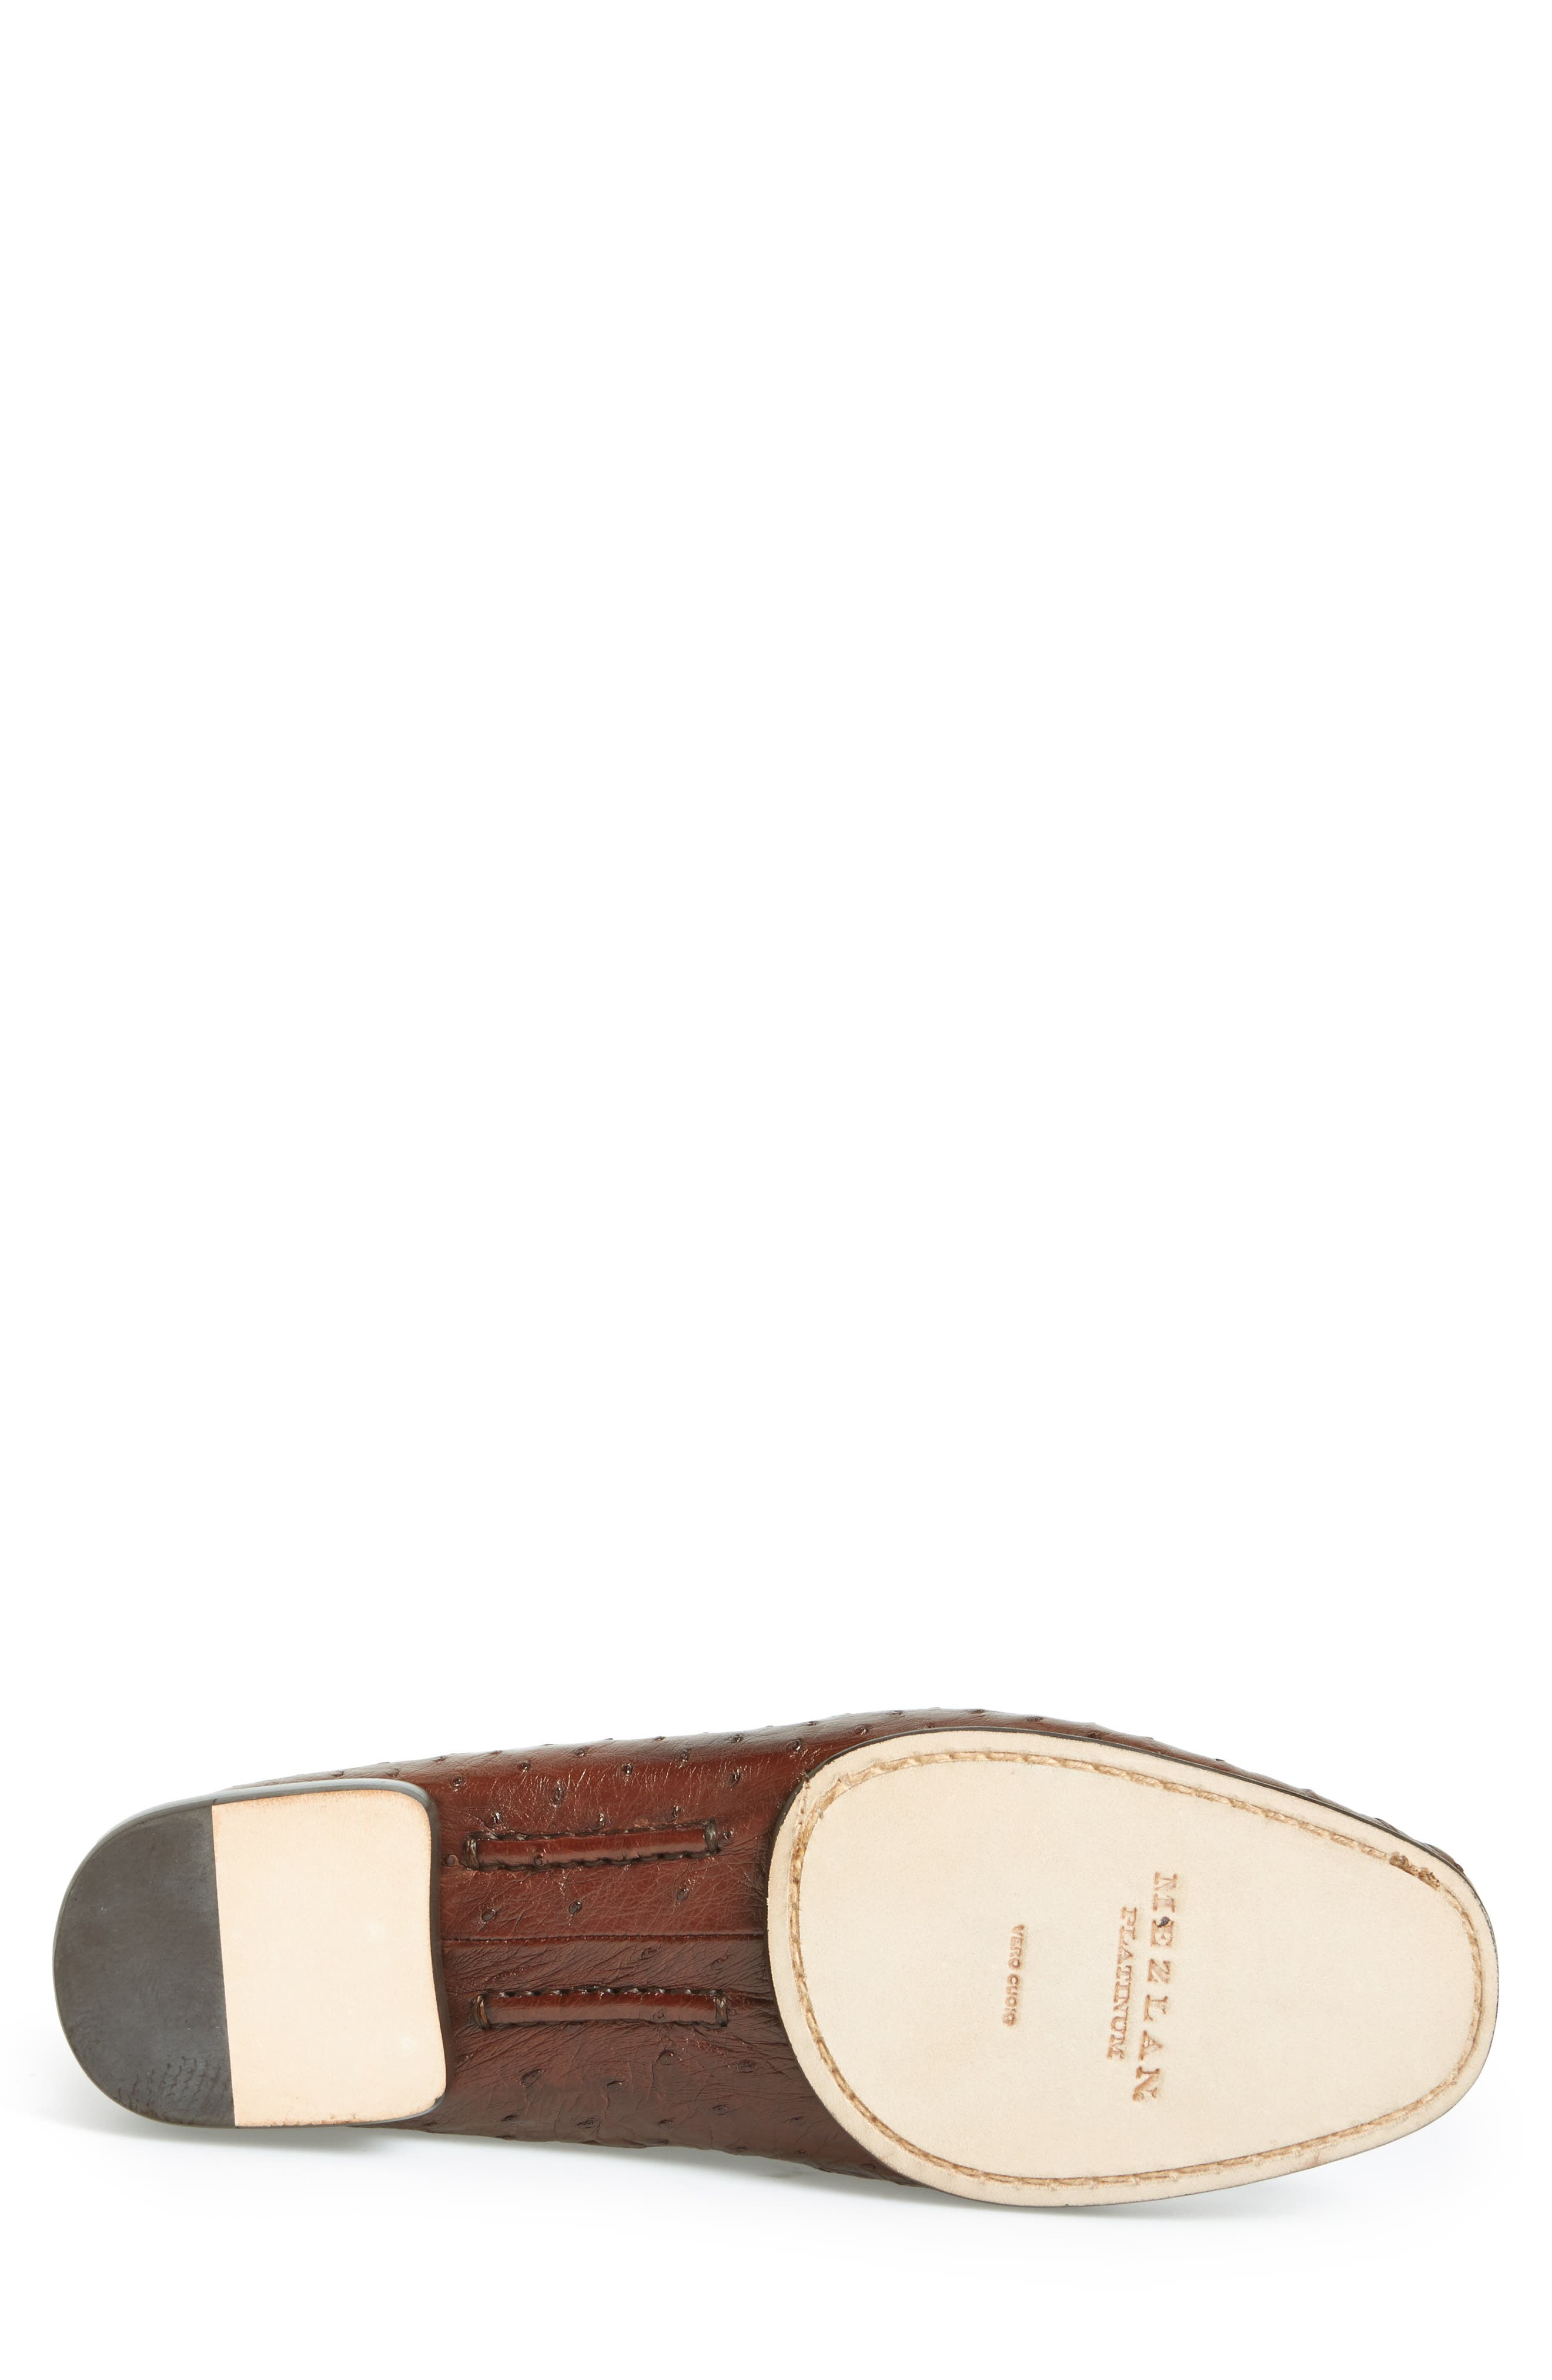 'Rollini' Ostrich Leather Loafer,                             Alternate thumbnail 4, color,                             TOBACCO